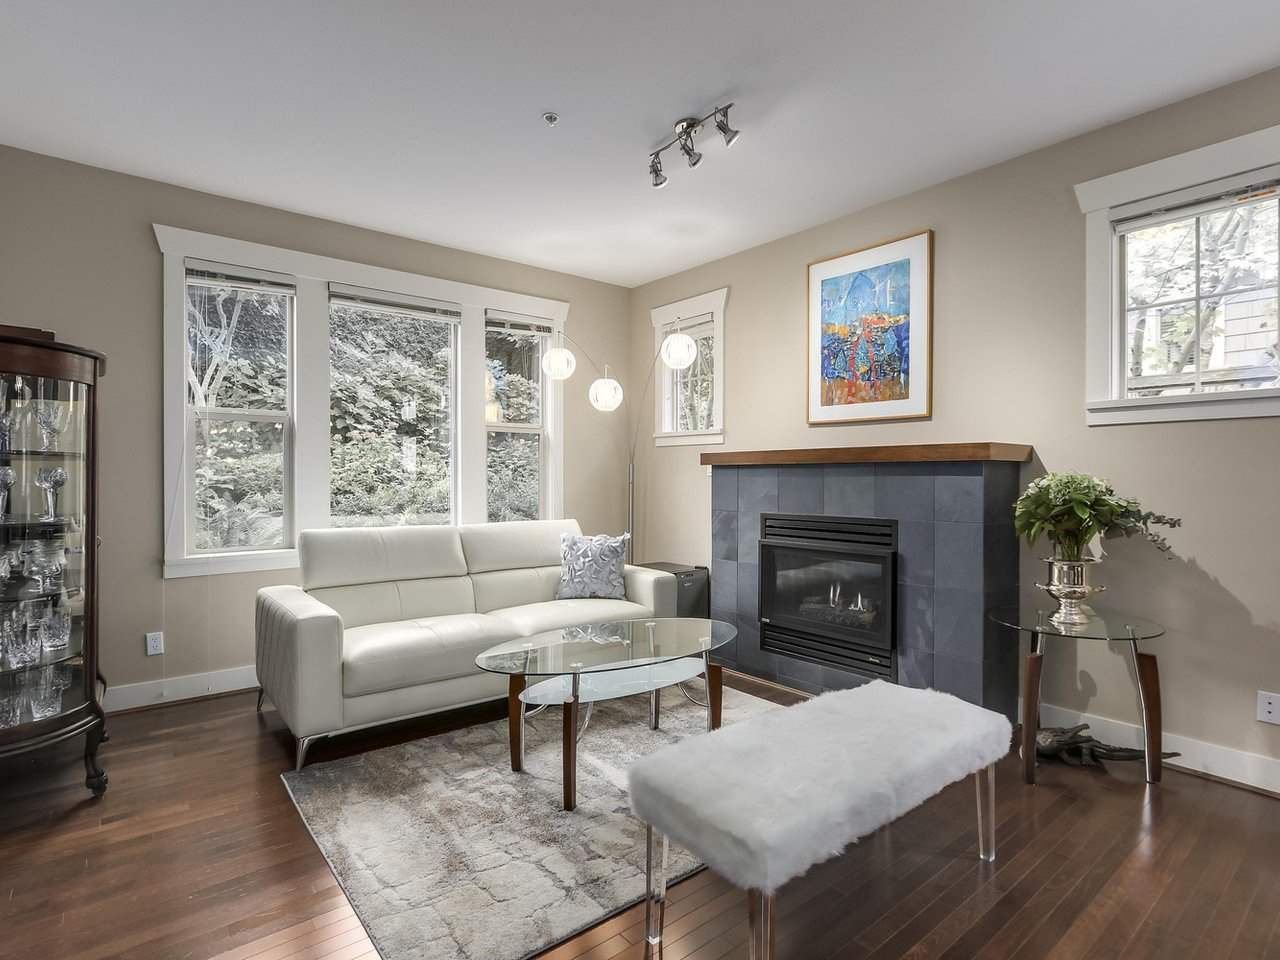 Main Photo: 229 E QUEENS ROAD in : Upper Lonsdale Townhouse for sale : MLS®# R2362718